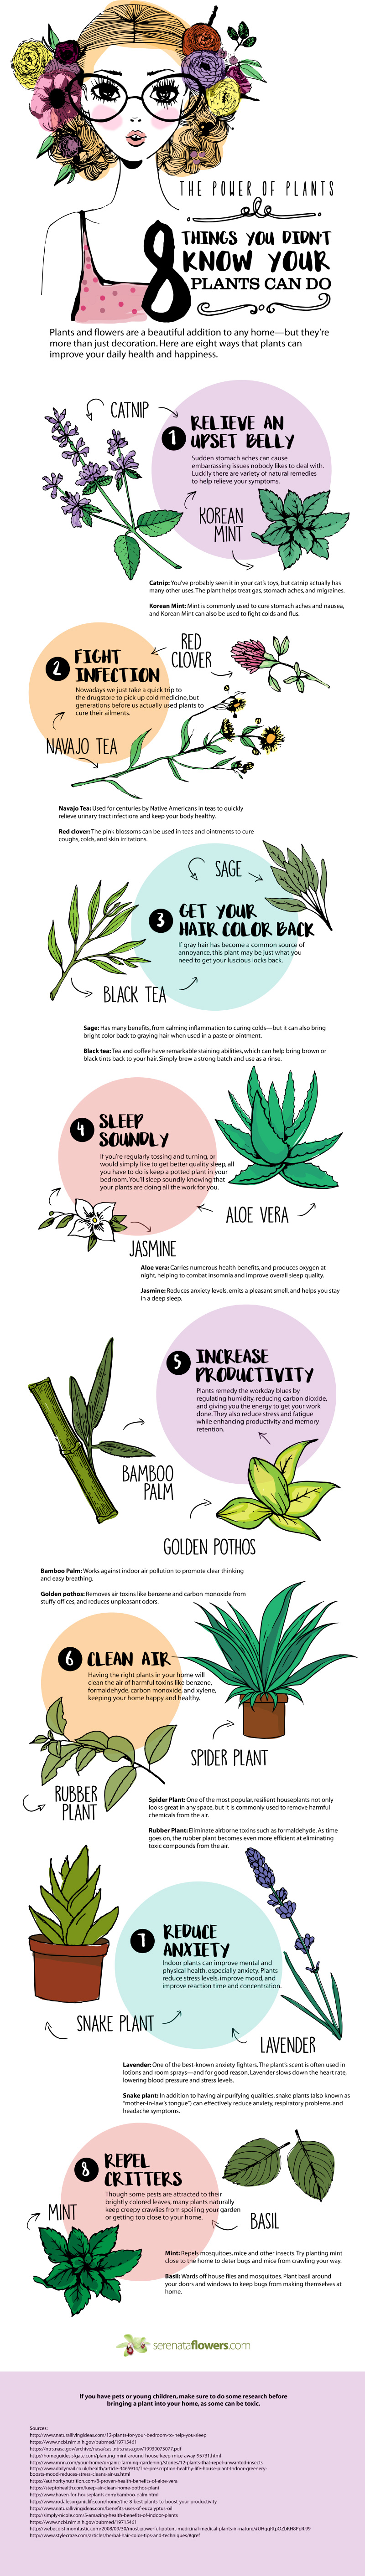 Did You Know Plants Could Do These 8 Things - Infographic